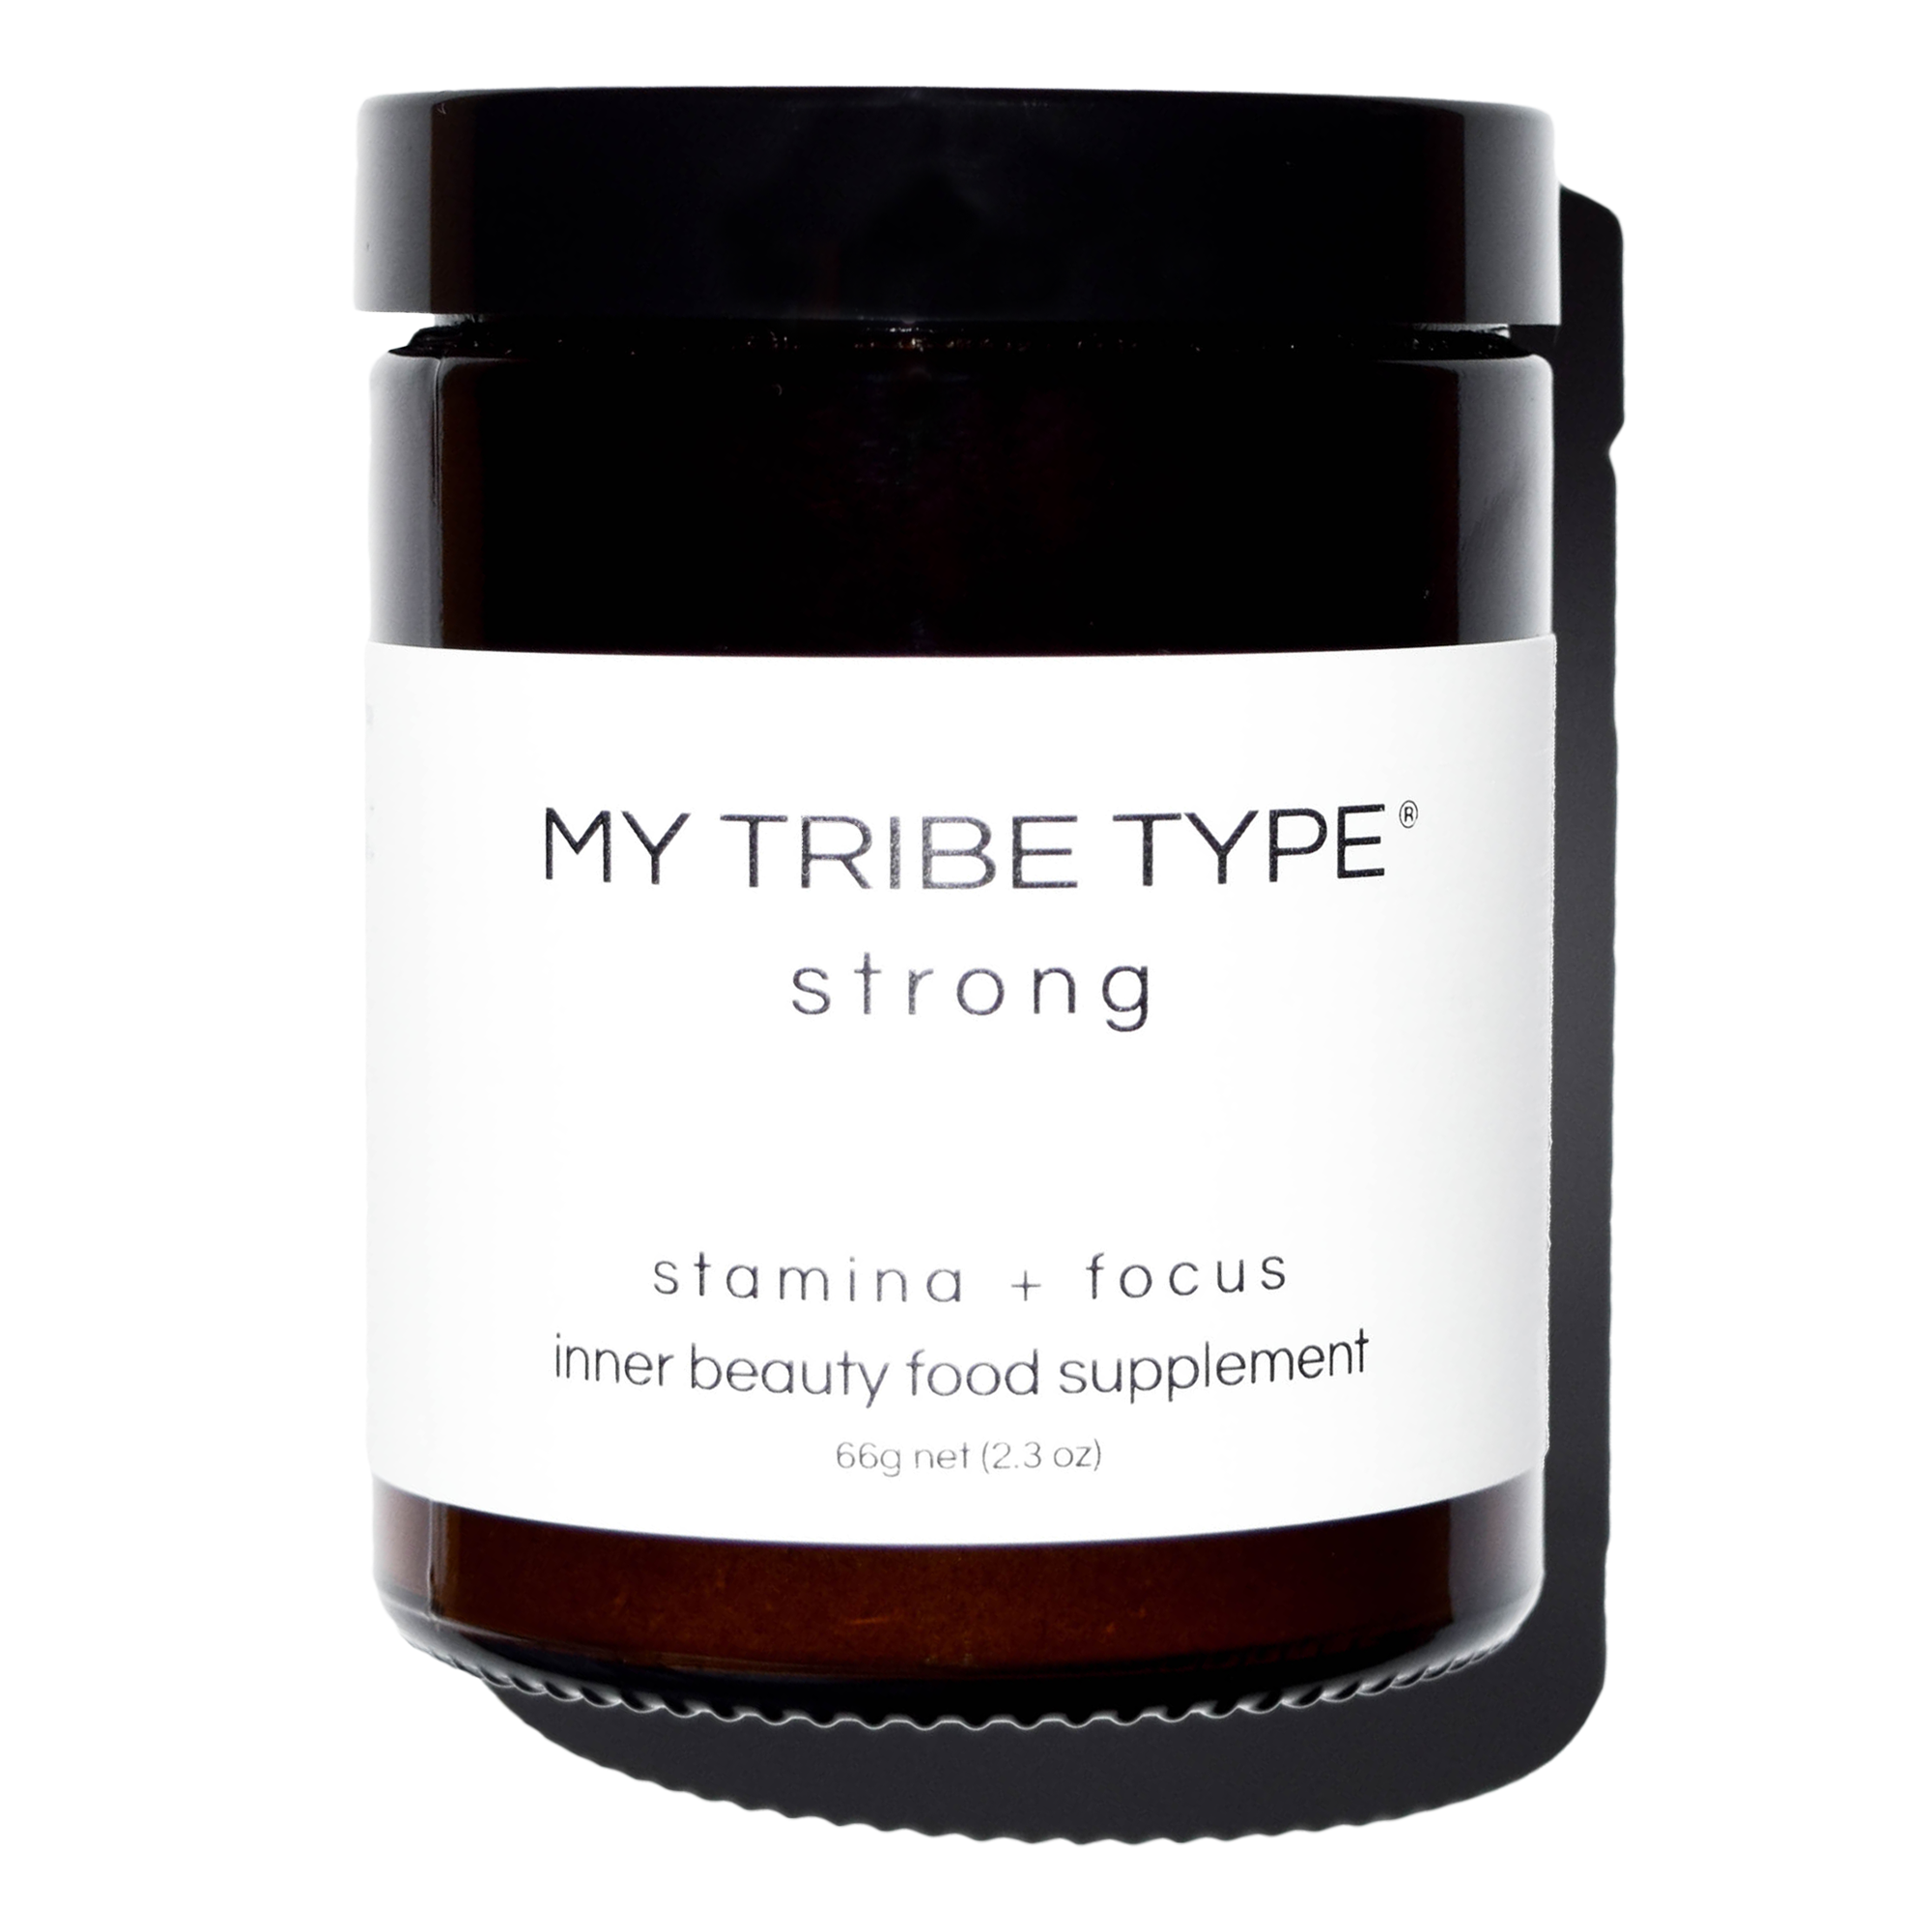 My Tribe Type Strong